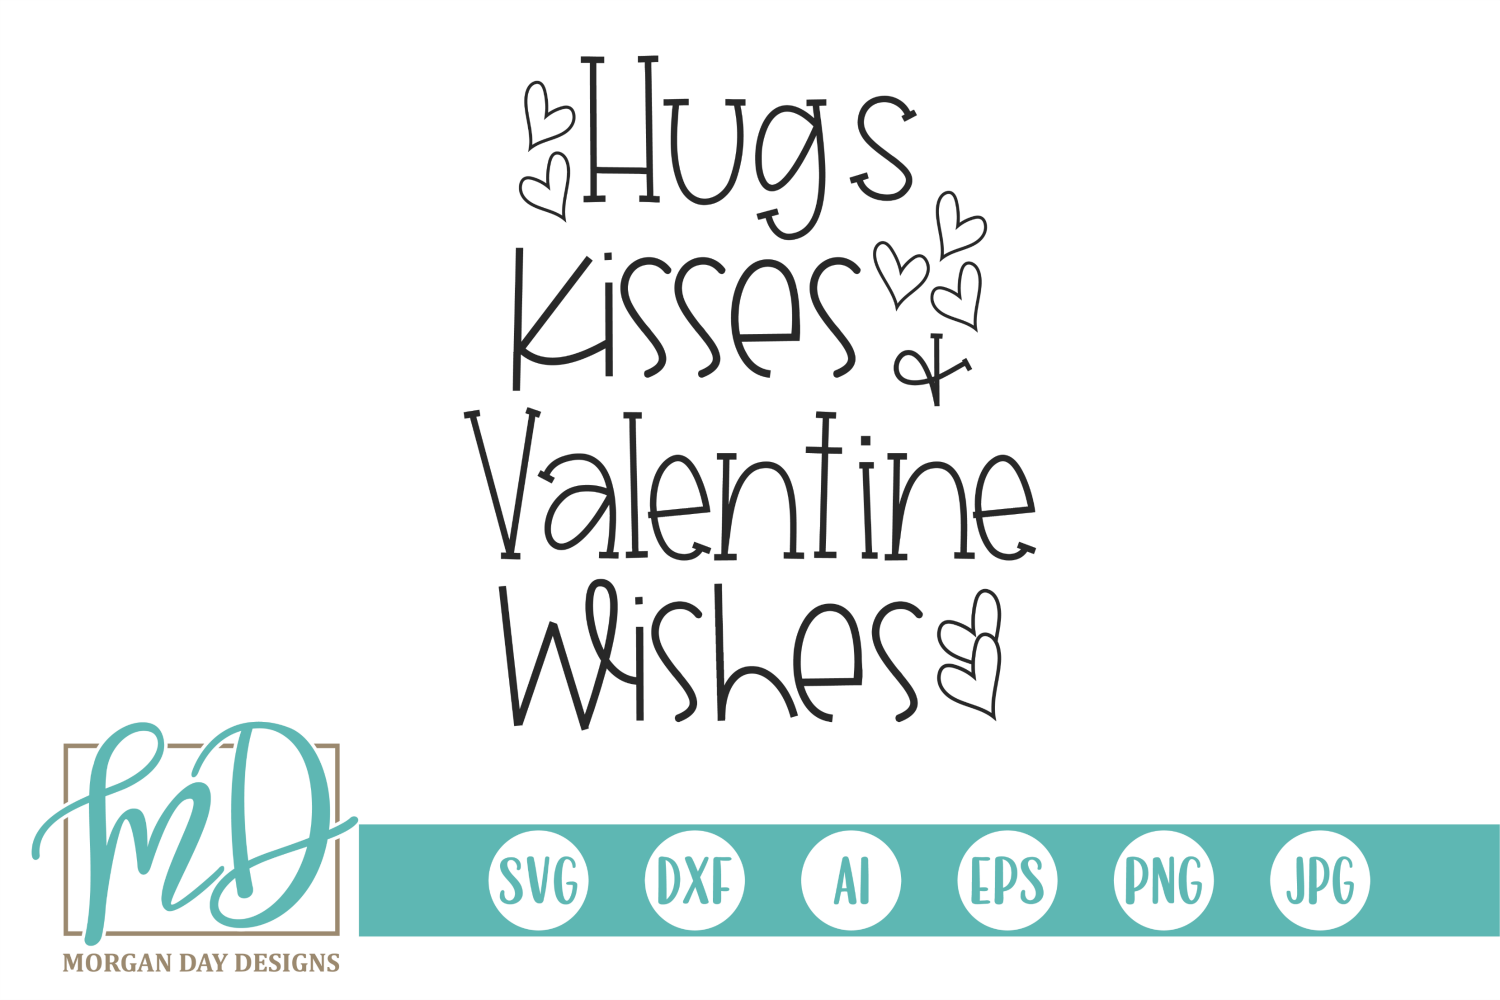 Download Hugs Kisses And Valentine Wishes | Valentine wishes, Print ...